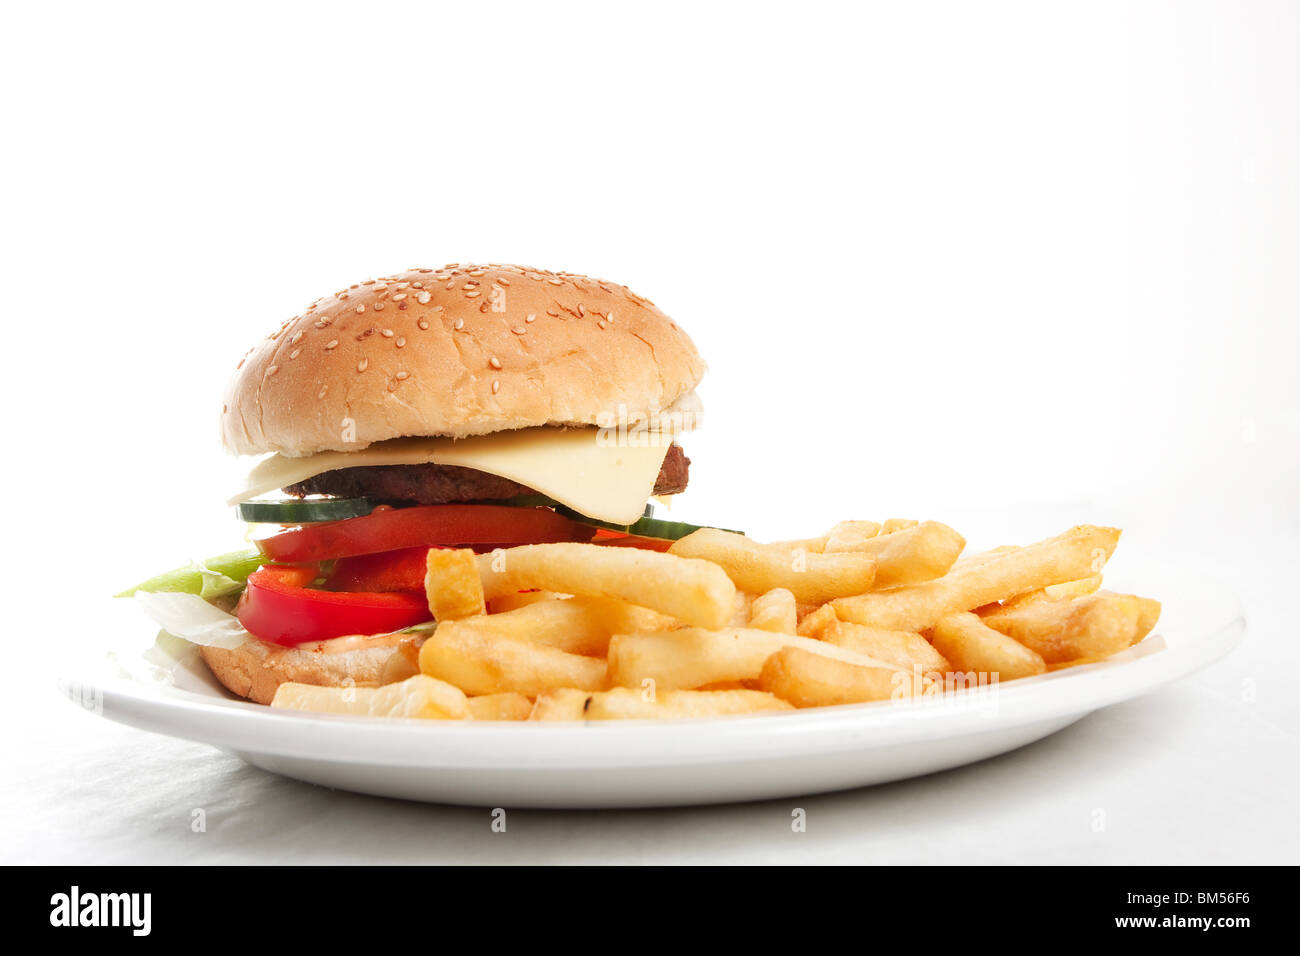 Hamburger with french fries on a dinner plate  sc 1 st  Alamy & Hamburger with french fries on a dinner plate Stock Photo ...